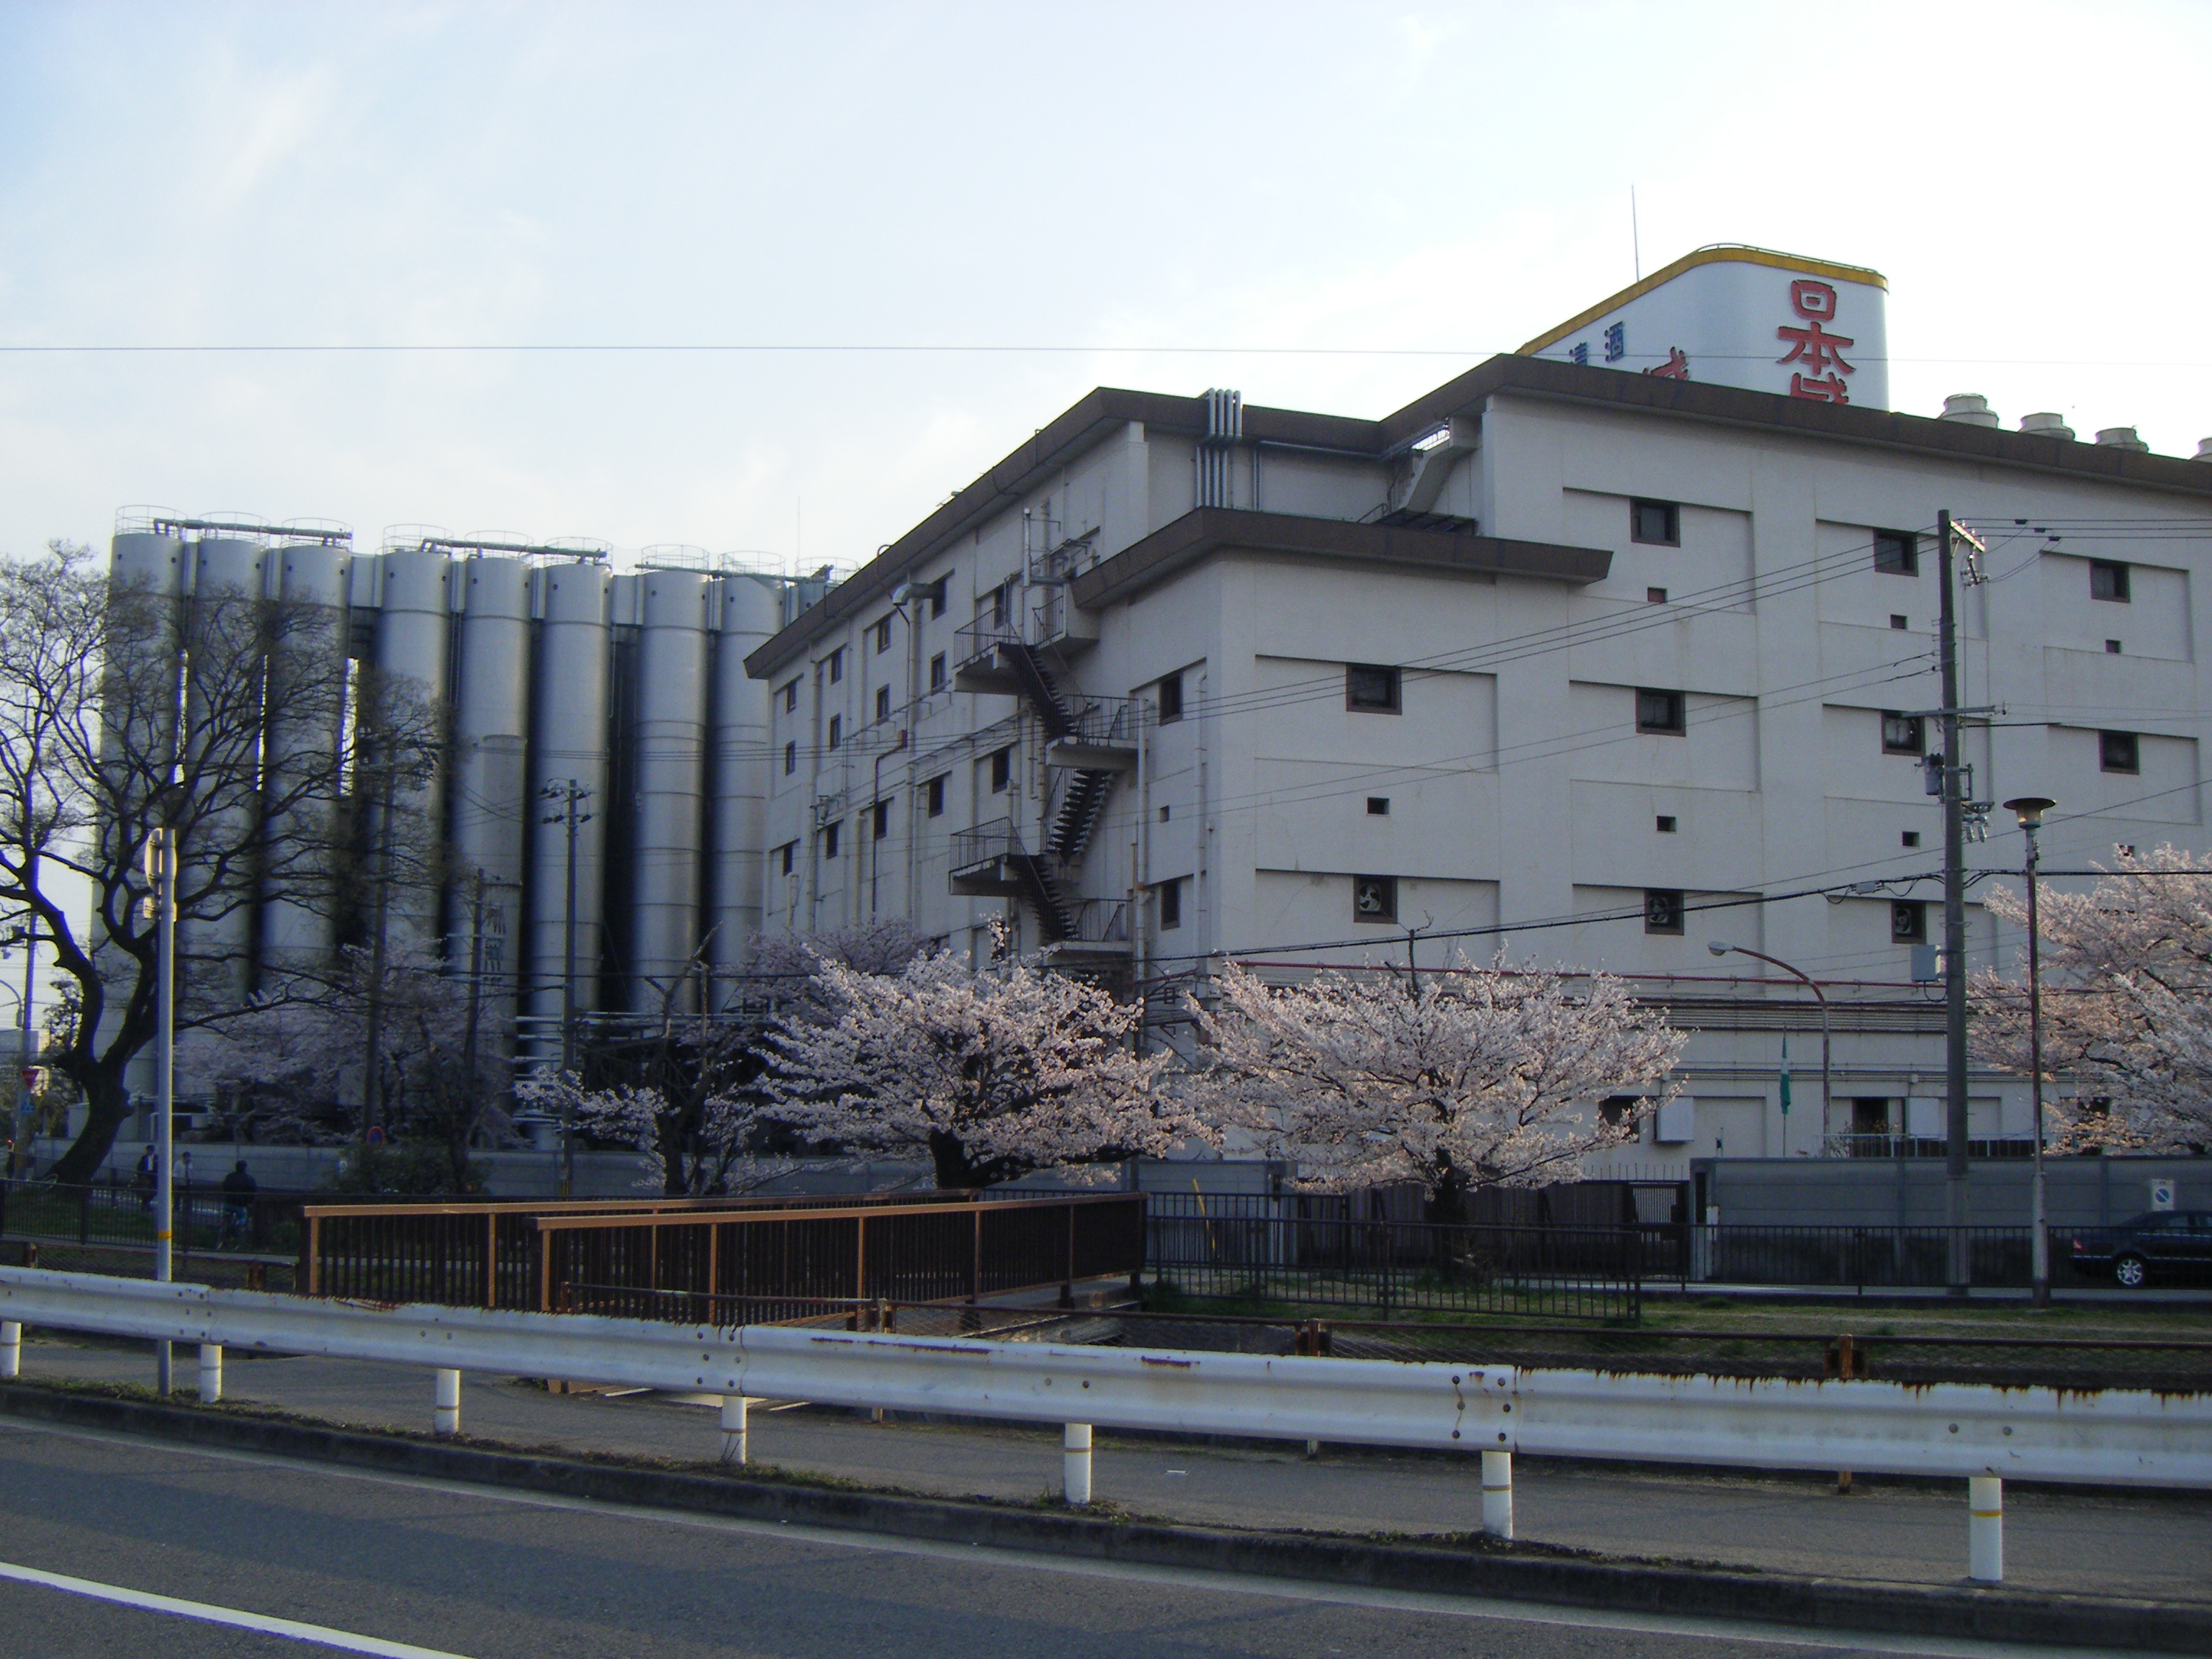 https://upload.wikimedia.org/wikipedia/ja/c/cb/Nihonsakari-building01.jpg